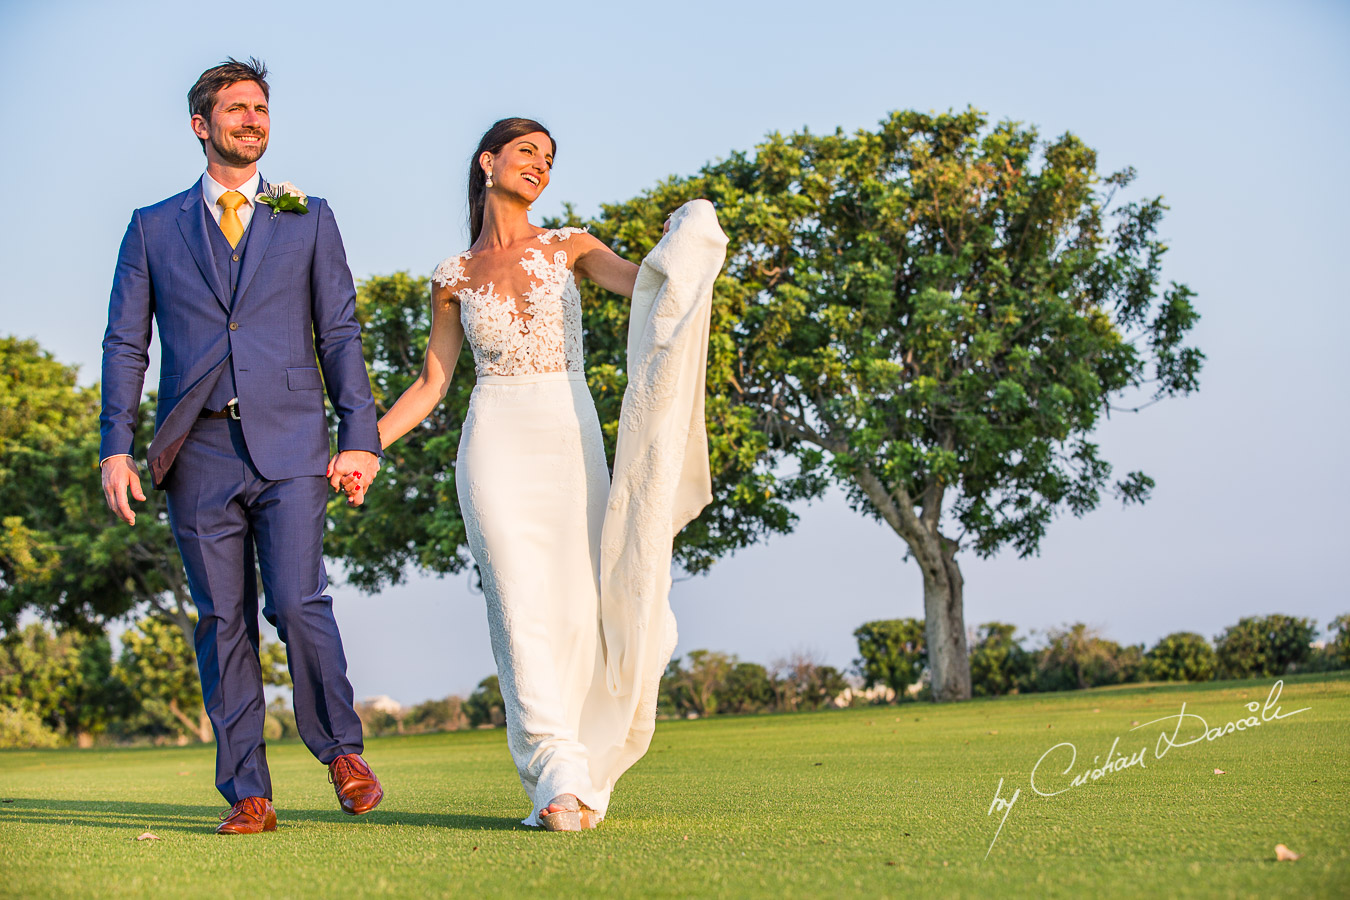 Intimate moments captured between Tim and Rhea at their beautiful wedding in Paphos, Cyprus.